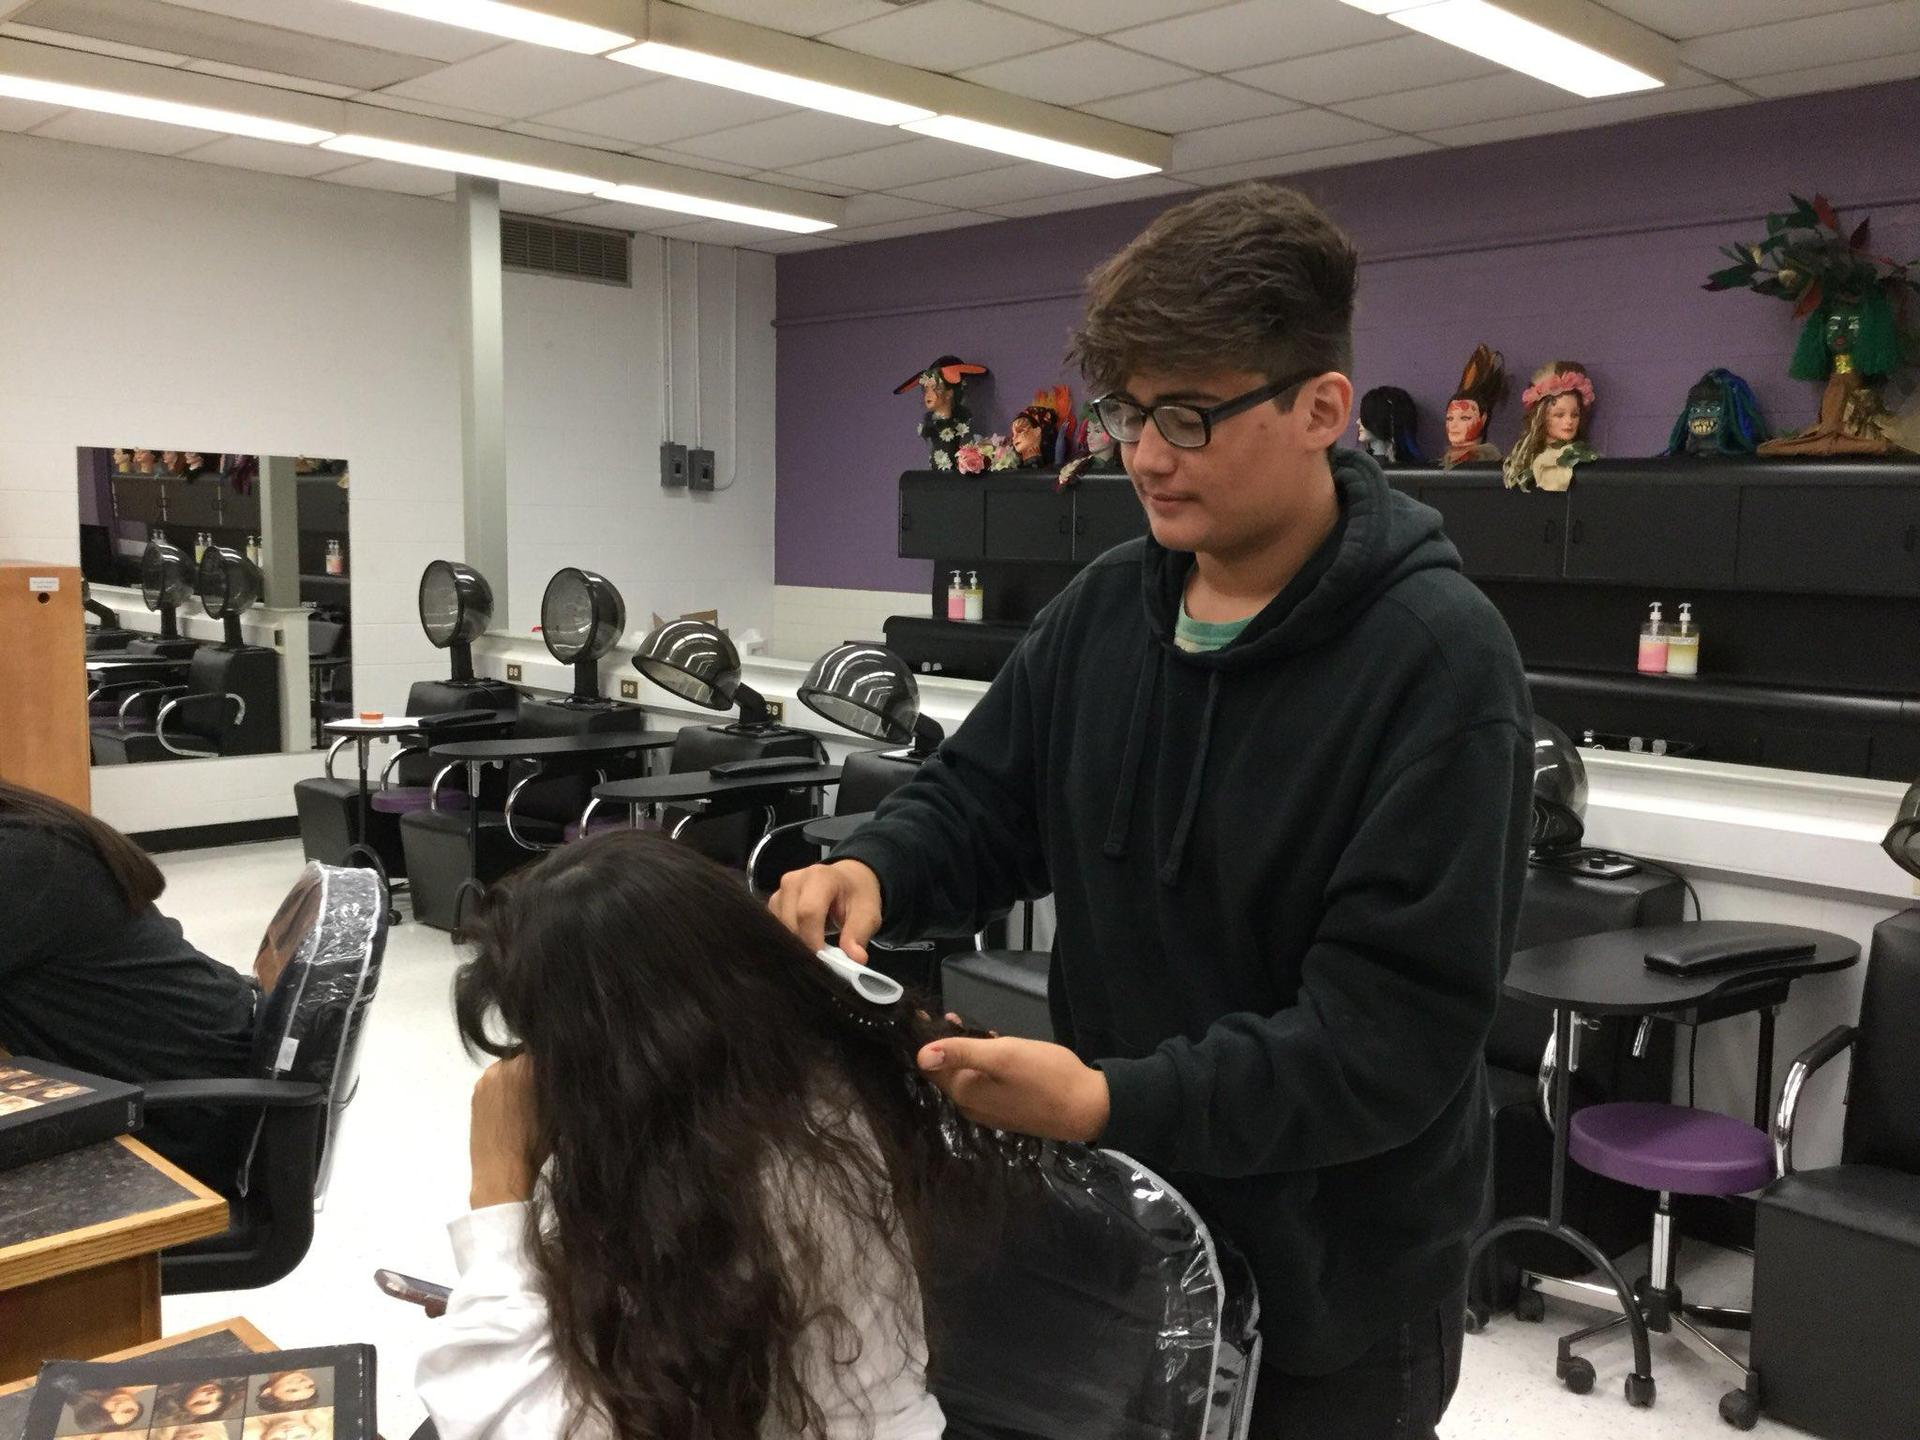 student styling another student's hair